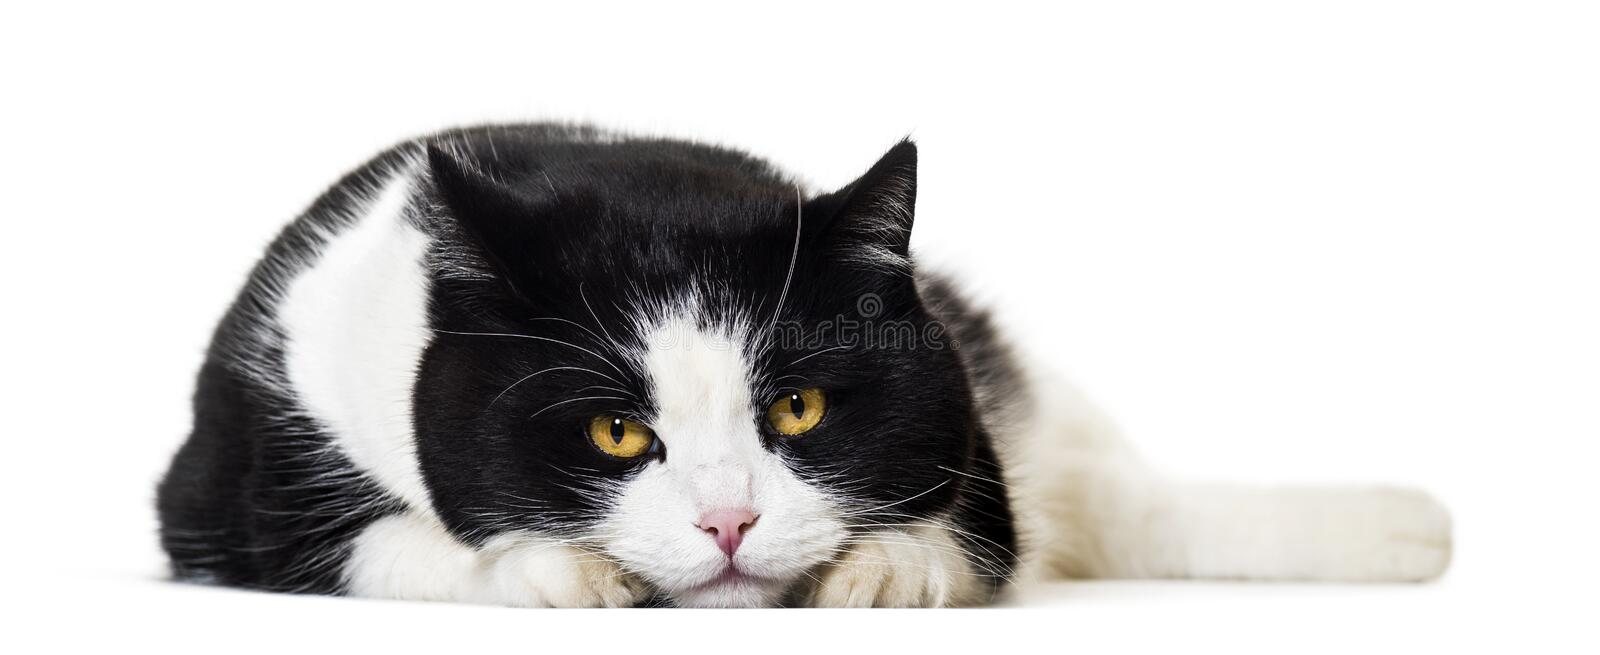 Mixed breed cat portrait against white background royalty free stock photography